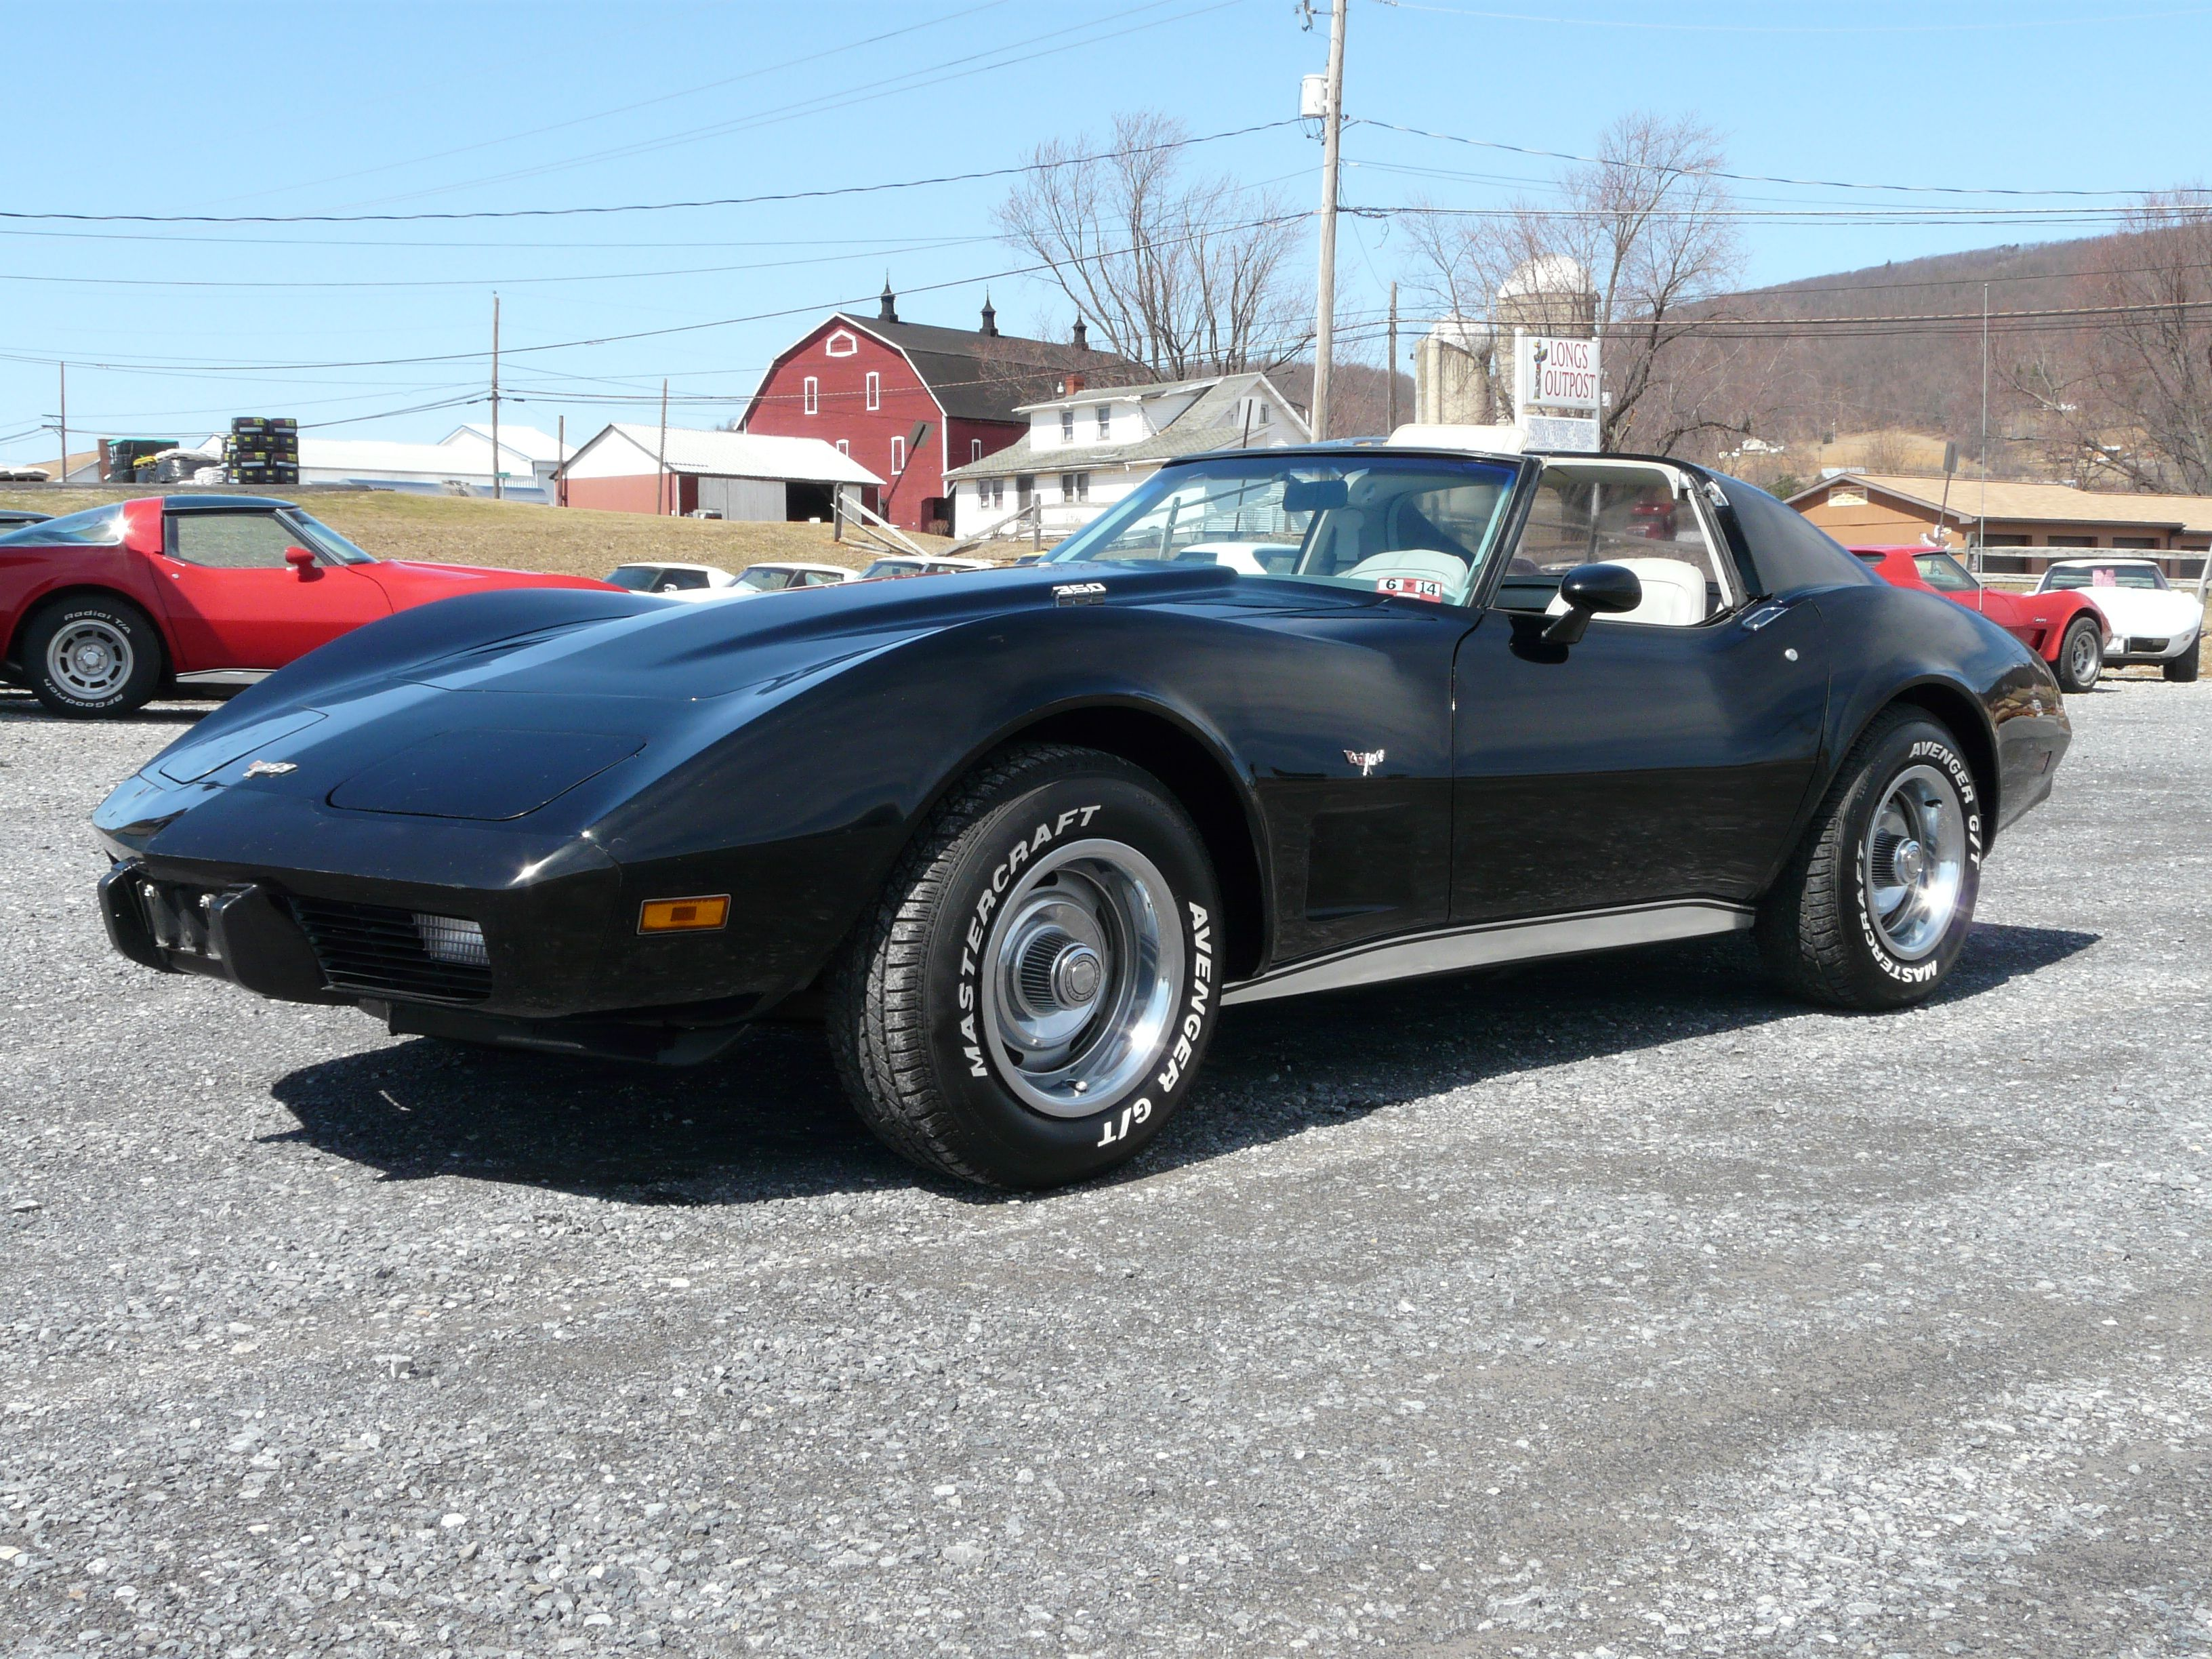 1969 lemans blue corvette stingray convertible 4 speed classic c3 corvettes for sale pinterest convertible manual transmission and chevy